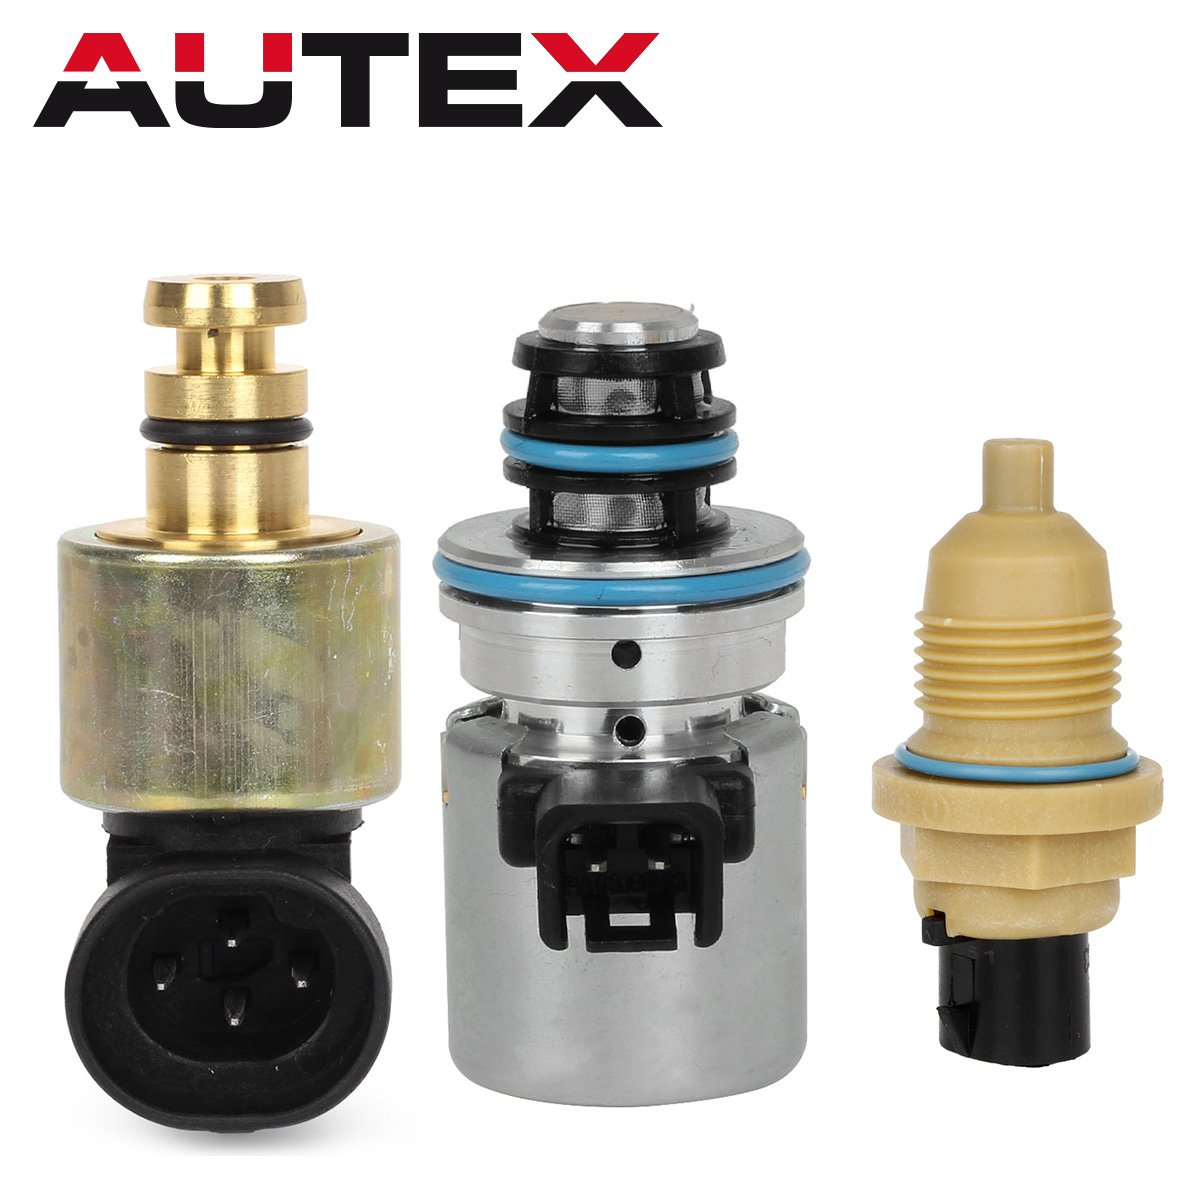 AUTEX 44RE 46RE 47RE Transmission EPC Solenoid Governer Pressure Sensor Output Speed Sensor Kit for 1996-1999 Chrysler Dodge & Jeep by AUTEX